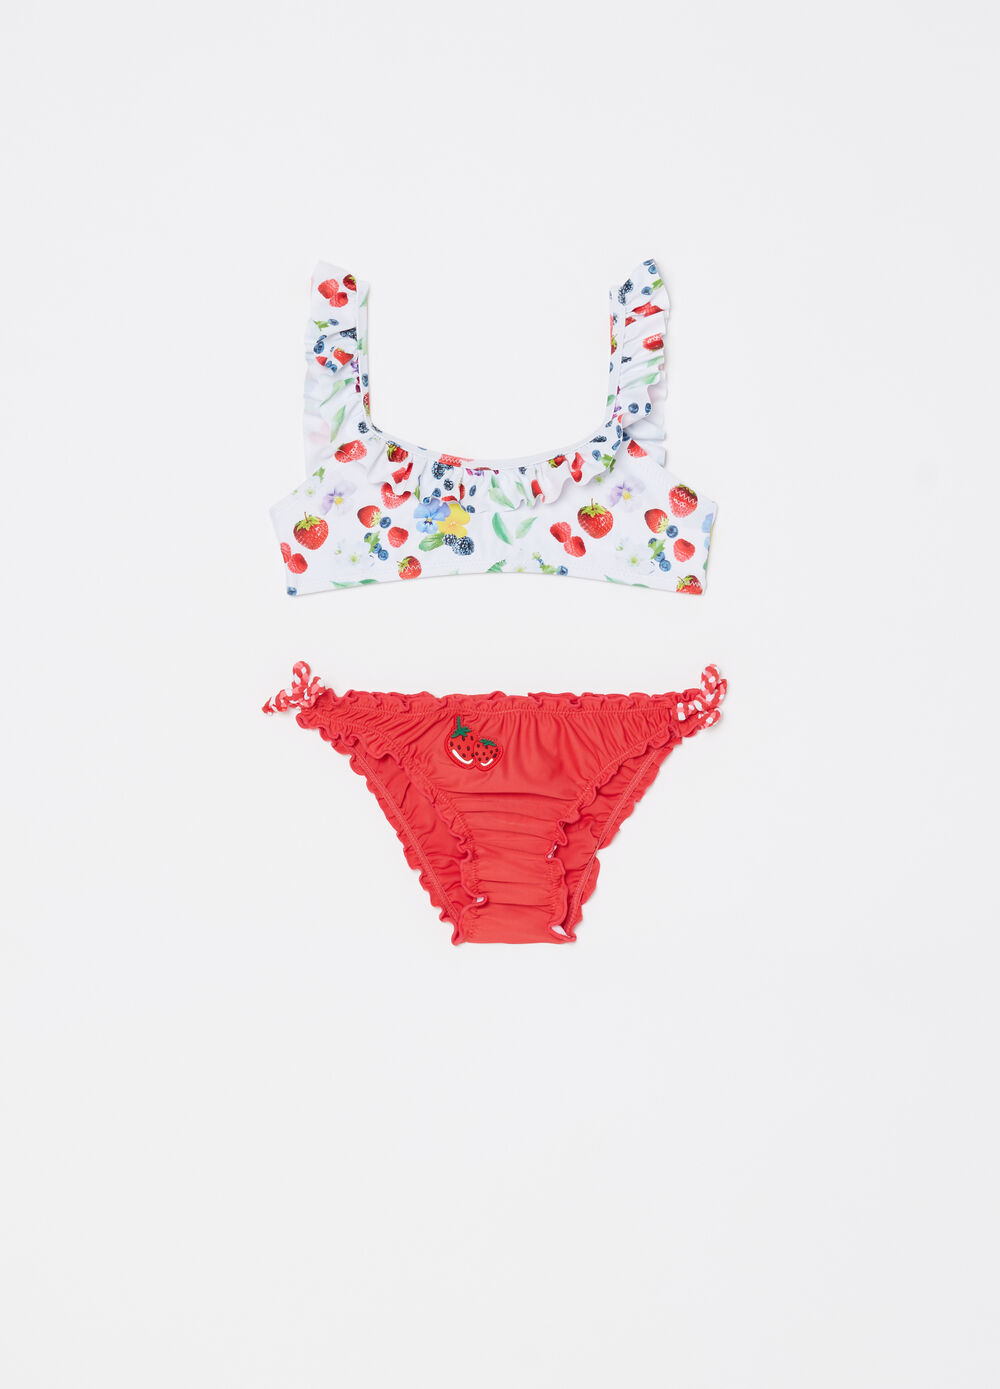 Bikini with fruit patterned top and solid colour briefs